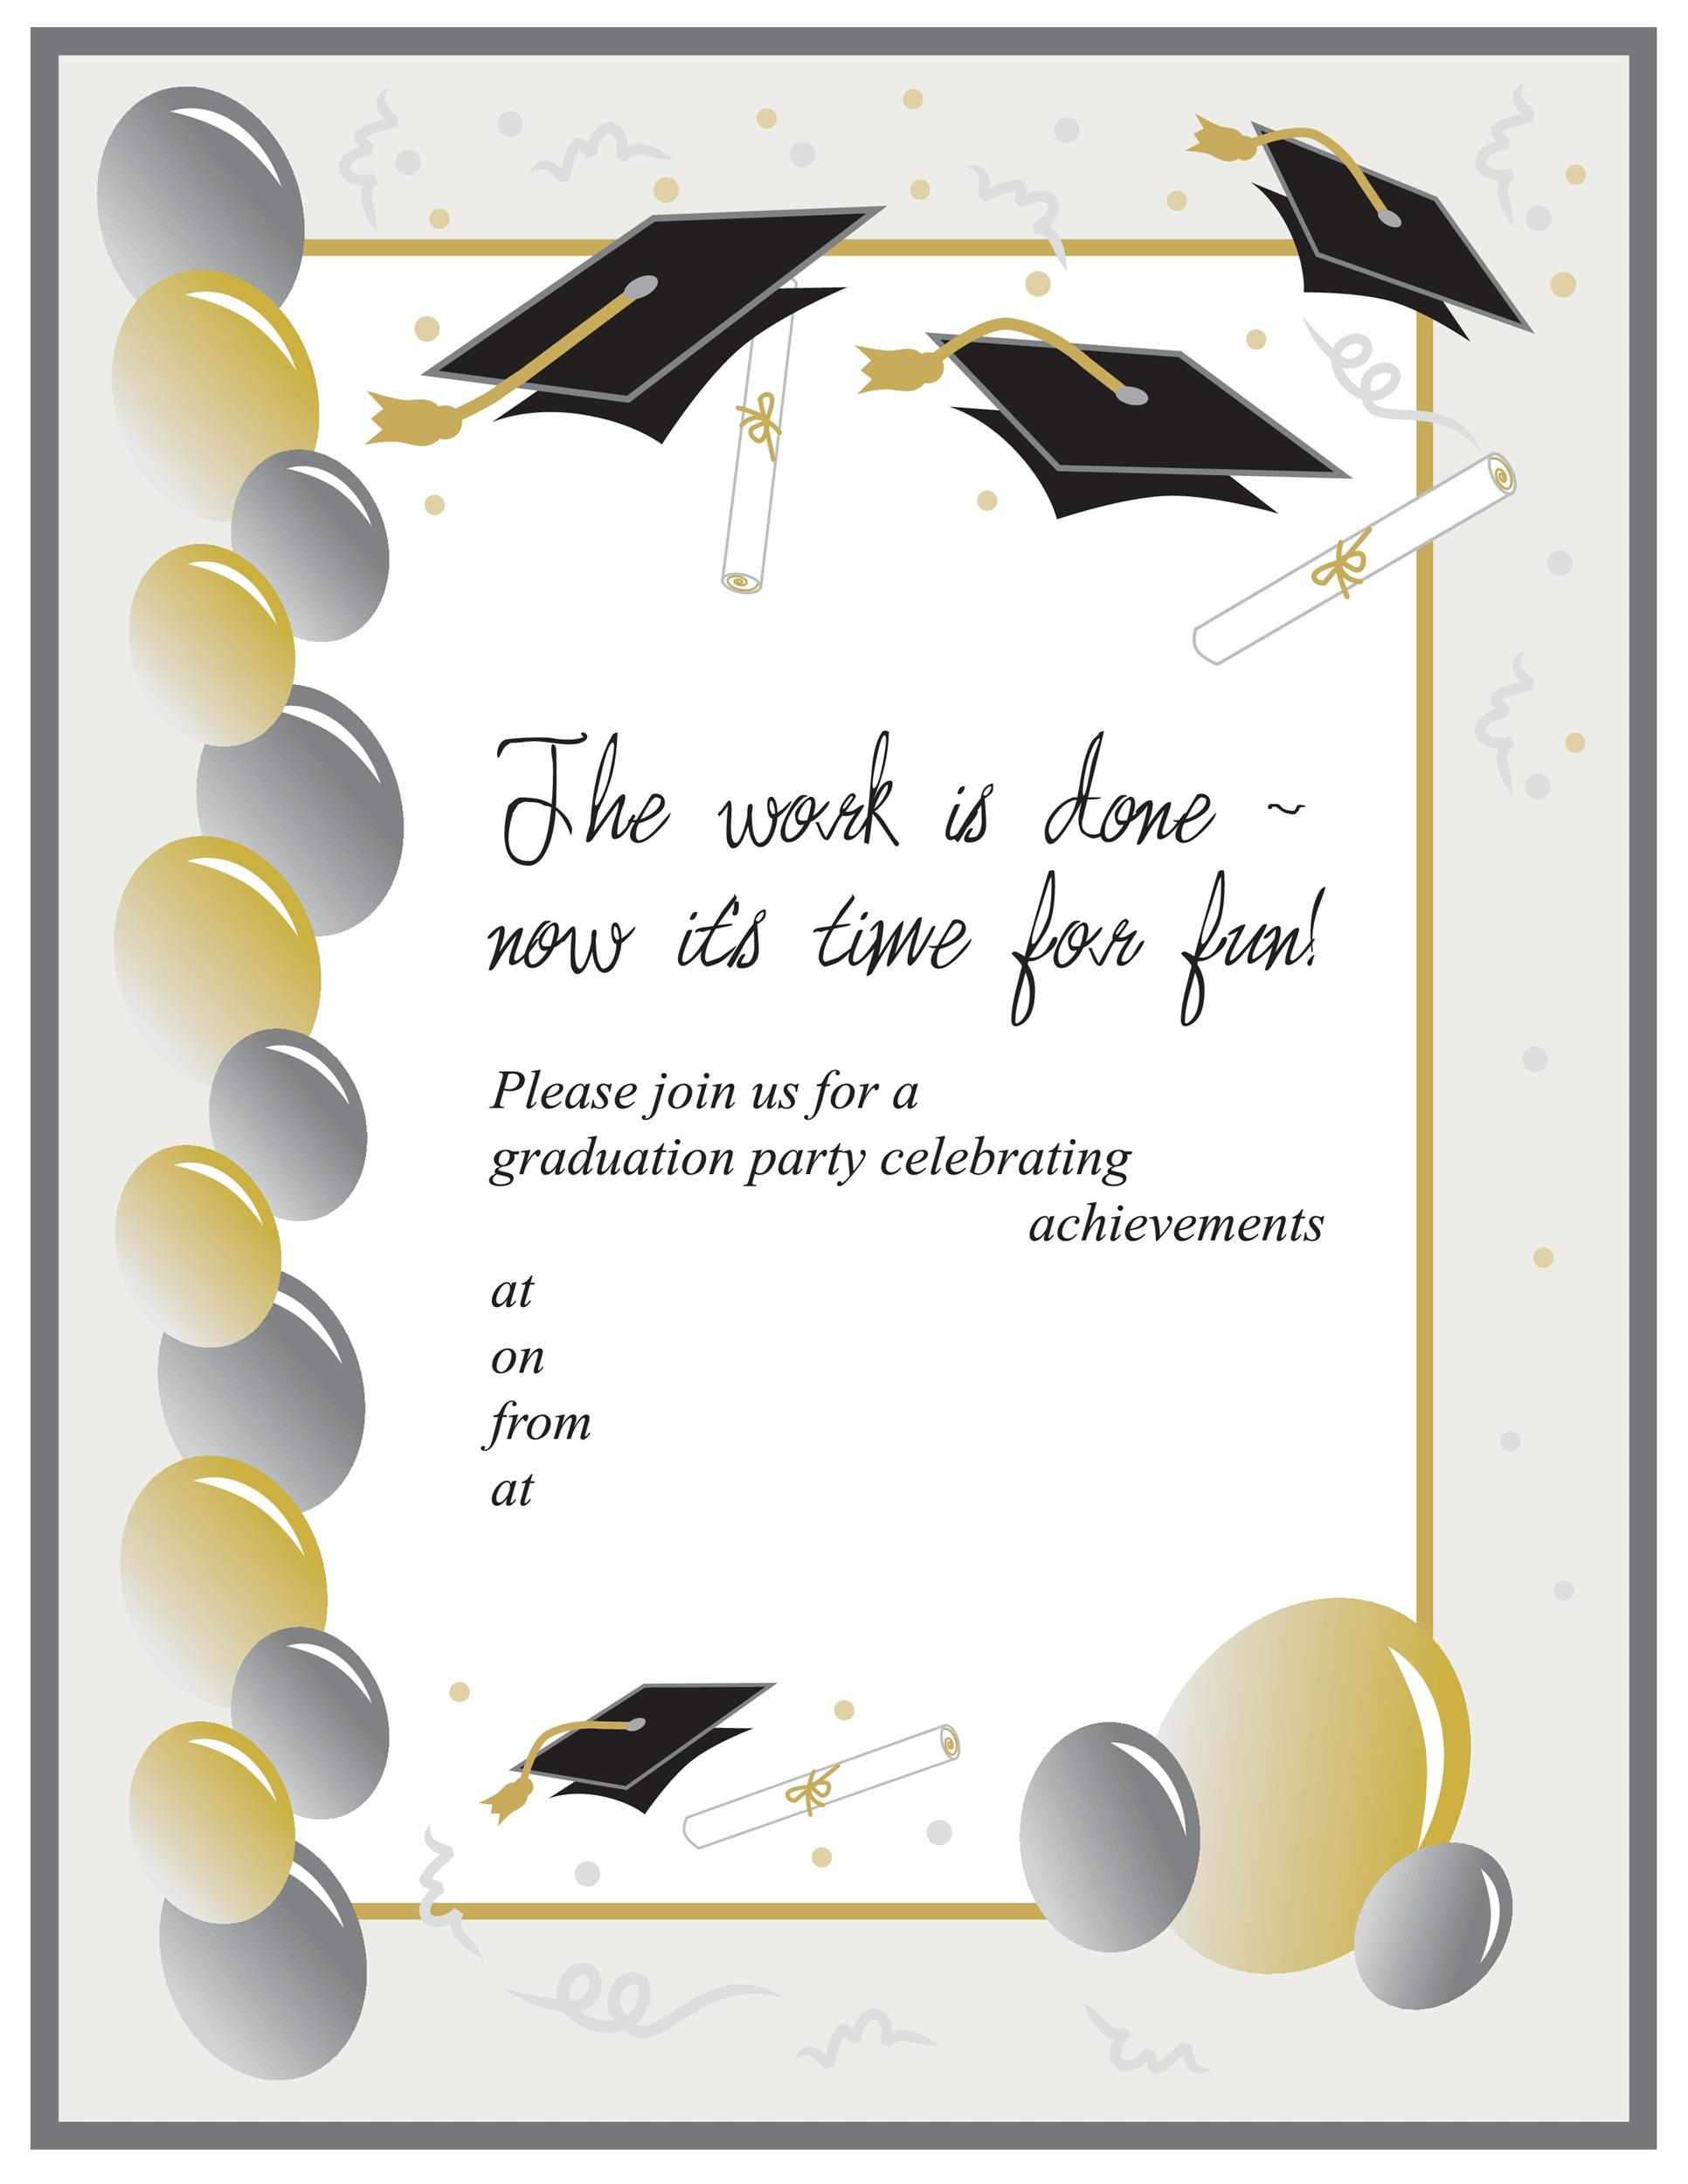 Printable graduation party invitations templates boatremyeaton 40 free graduation invitation templates template lab filmwisefo